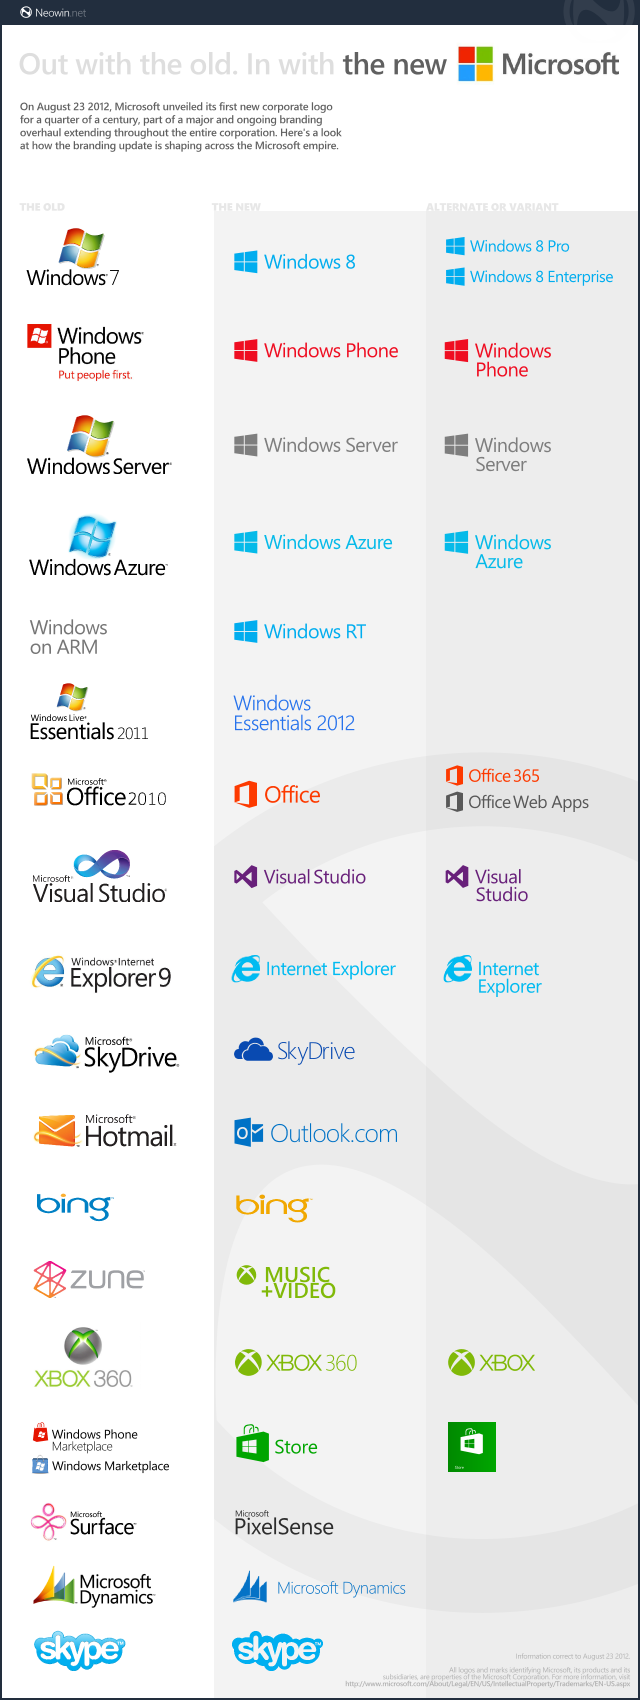 http://www.neowin.net/images/uploaded/microsoft-brand-family-2012-4.png